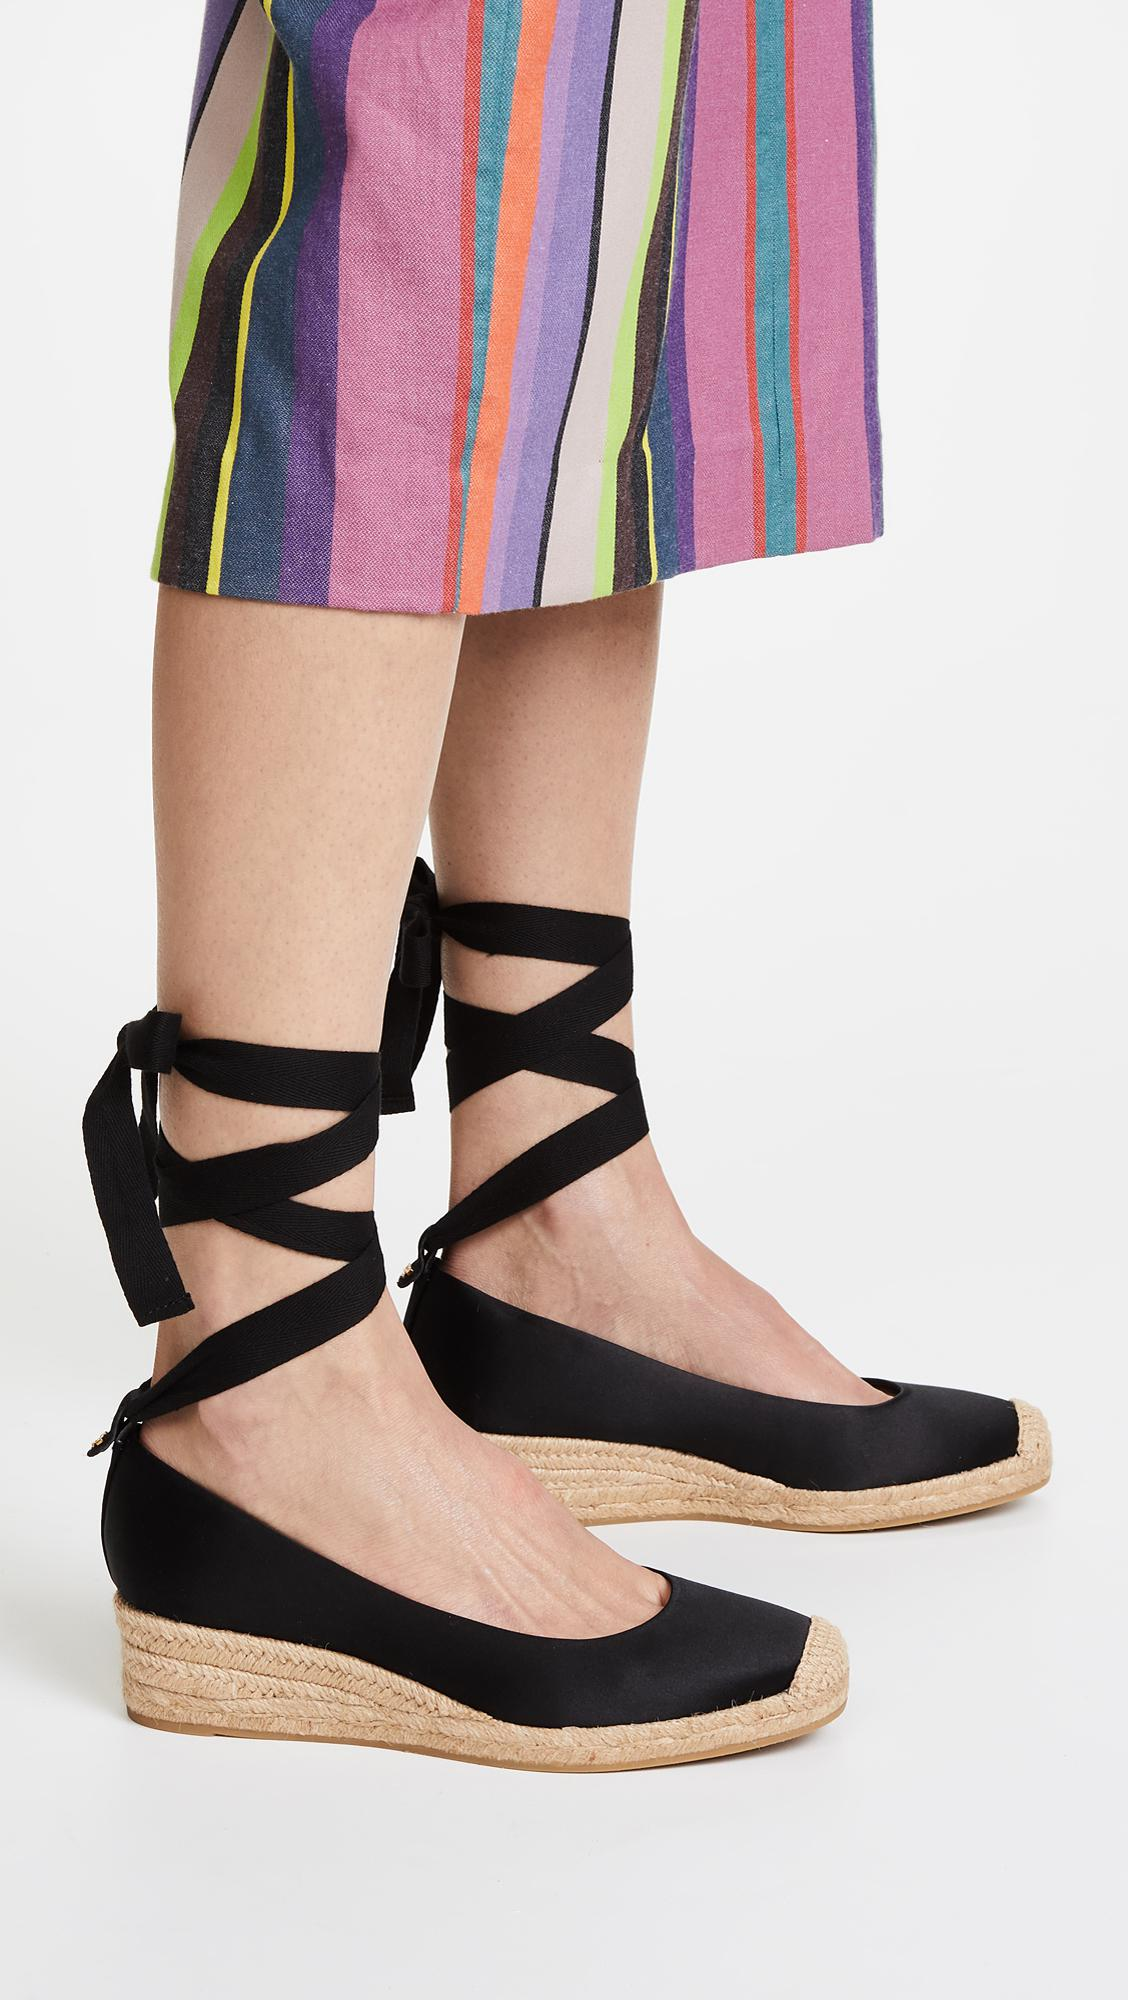 78a94dfc3 Tory Burch - Black Heather 40mm Wedge Espadrilles - Lyst. View fullscreen